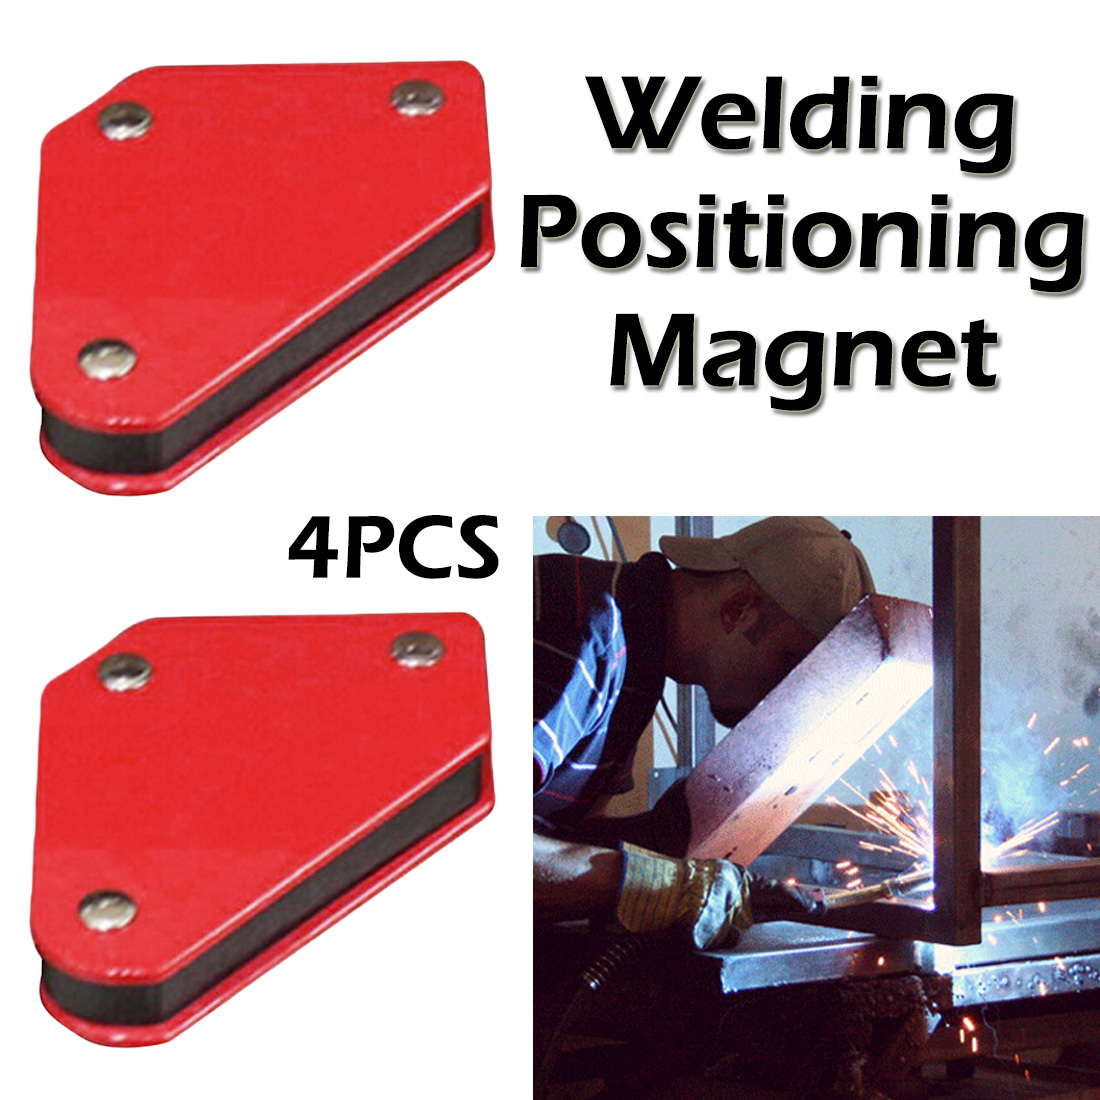 Power Tool Accessories 9LB Welding Locator Strong Magnet Welder Positioner 45 90 135 Soldering Fixture Magnetic Welding Holder